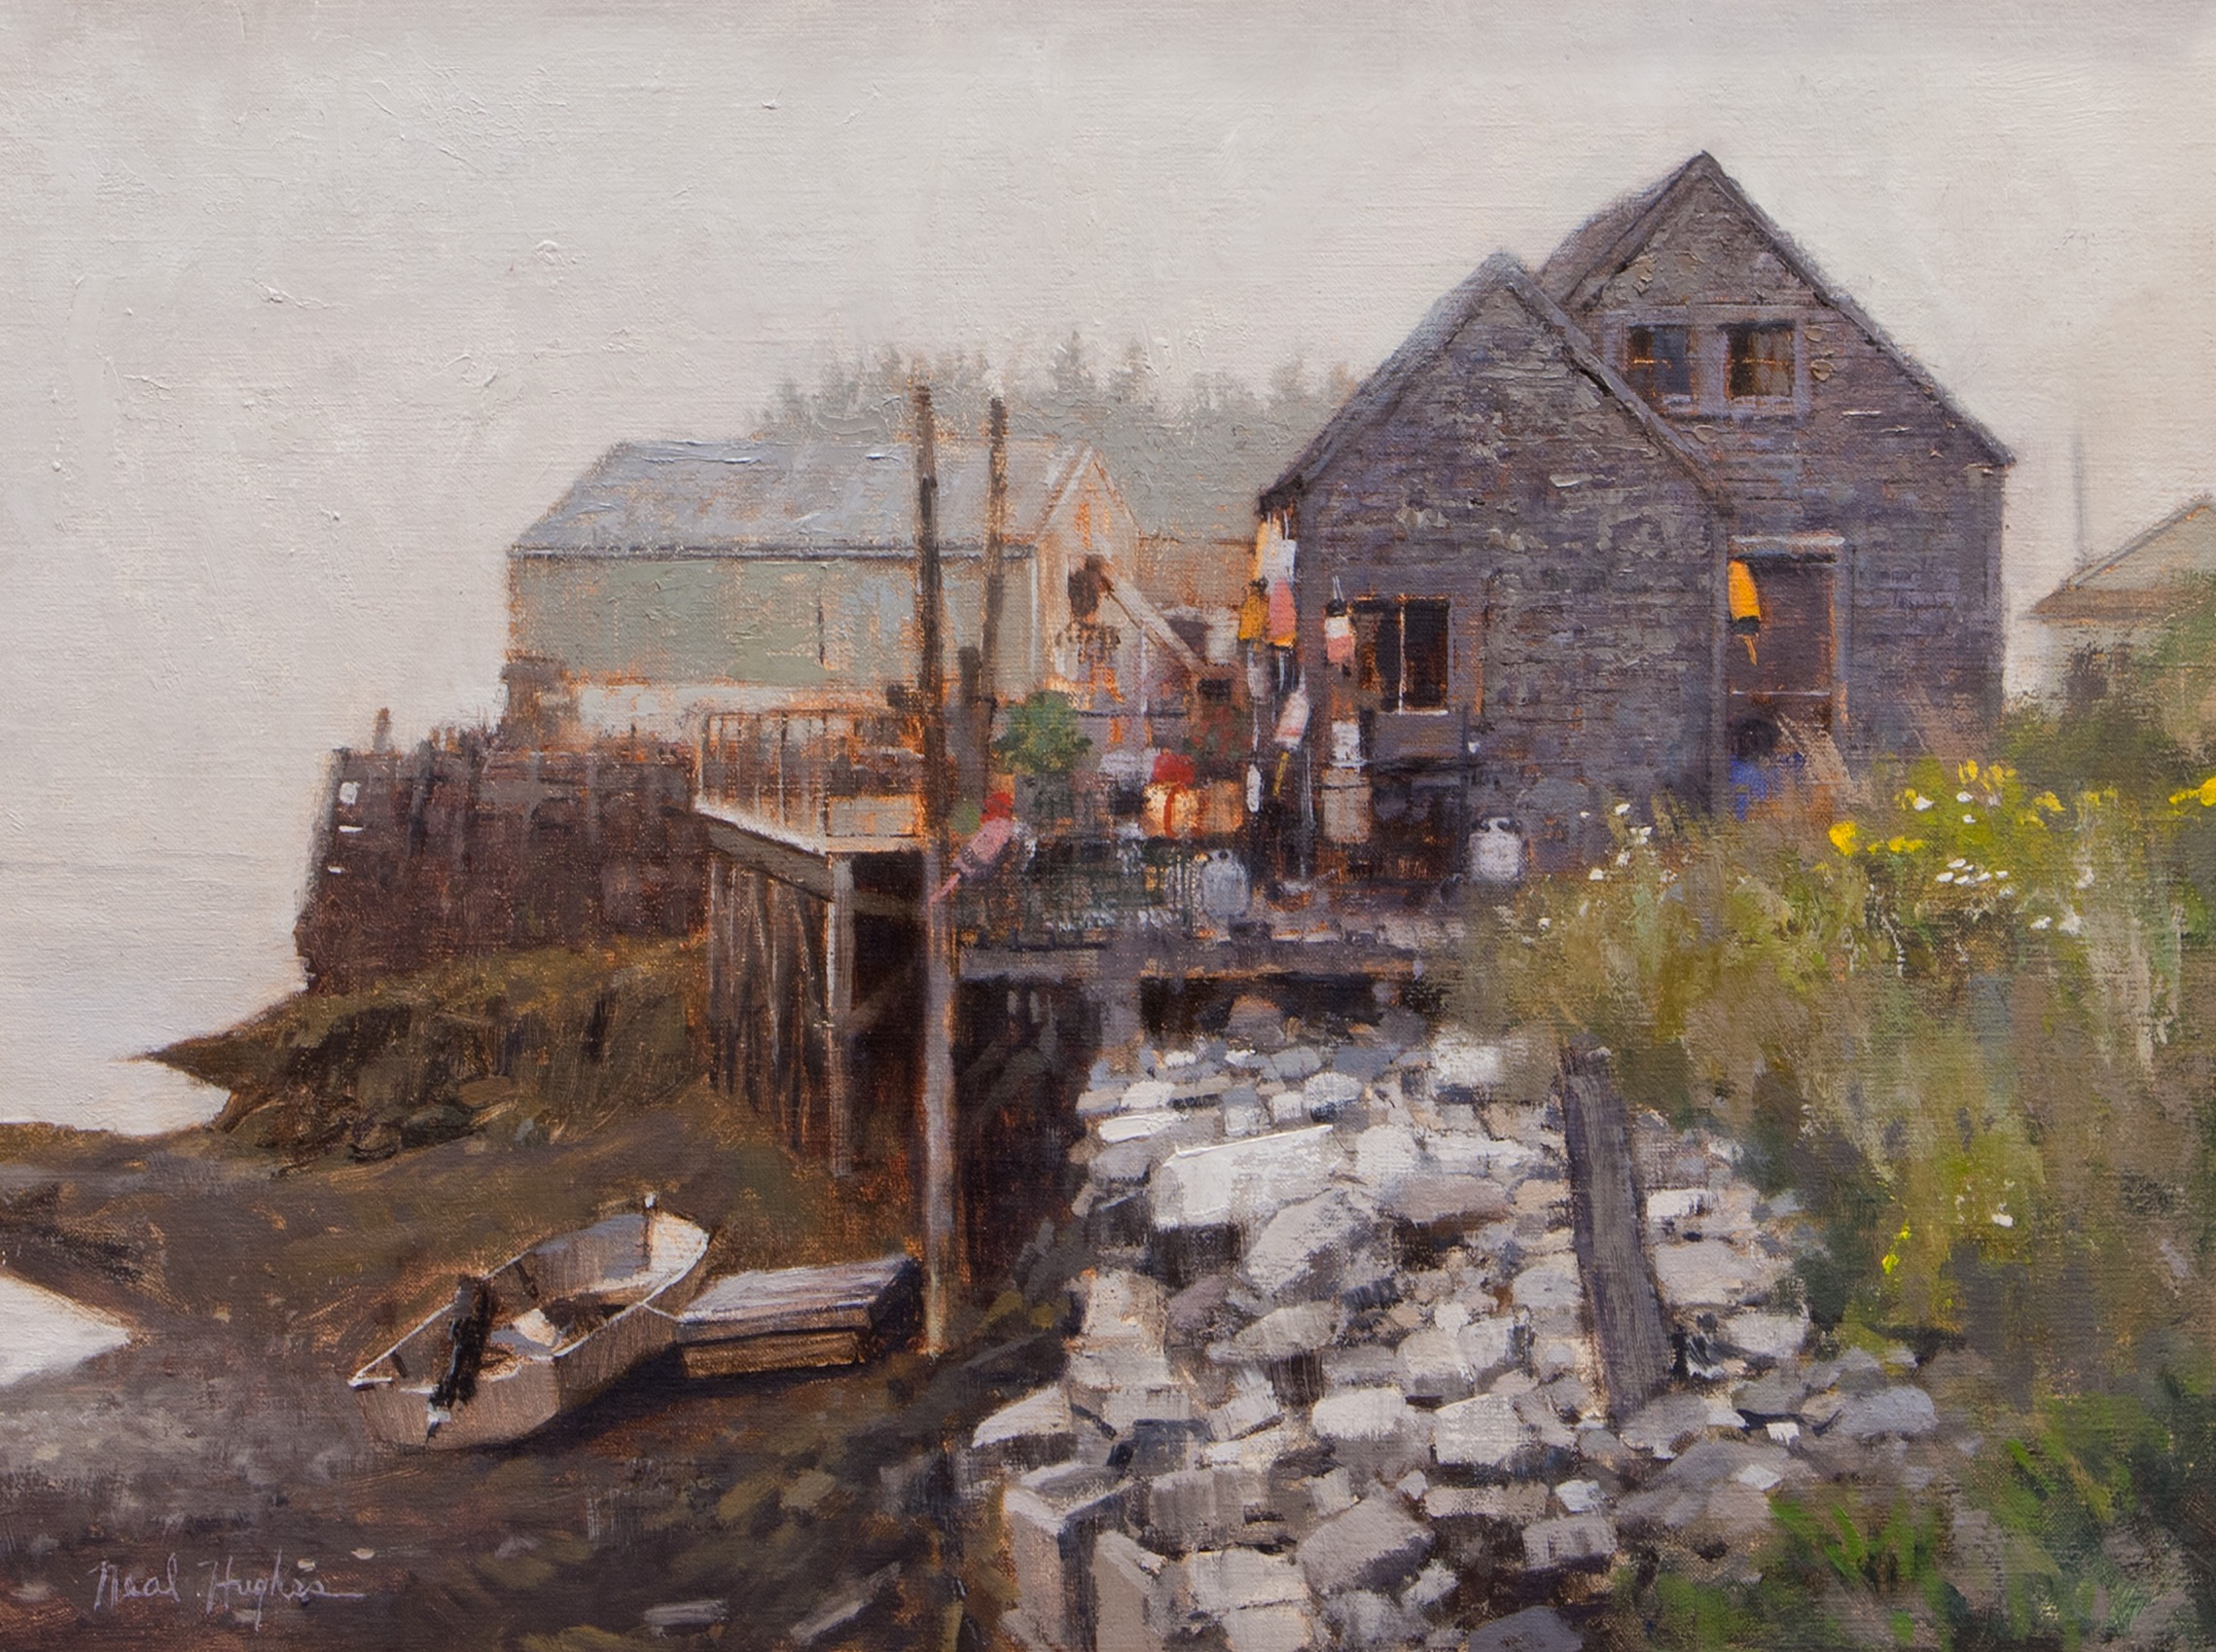 Foggy Day, Port Clyde by Neal Hughes at Sylvan Gallery